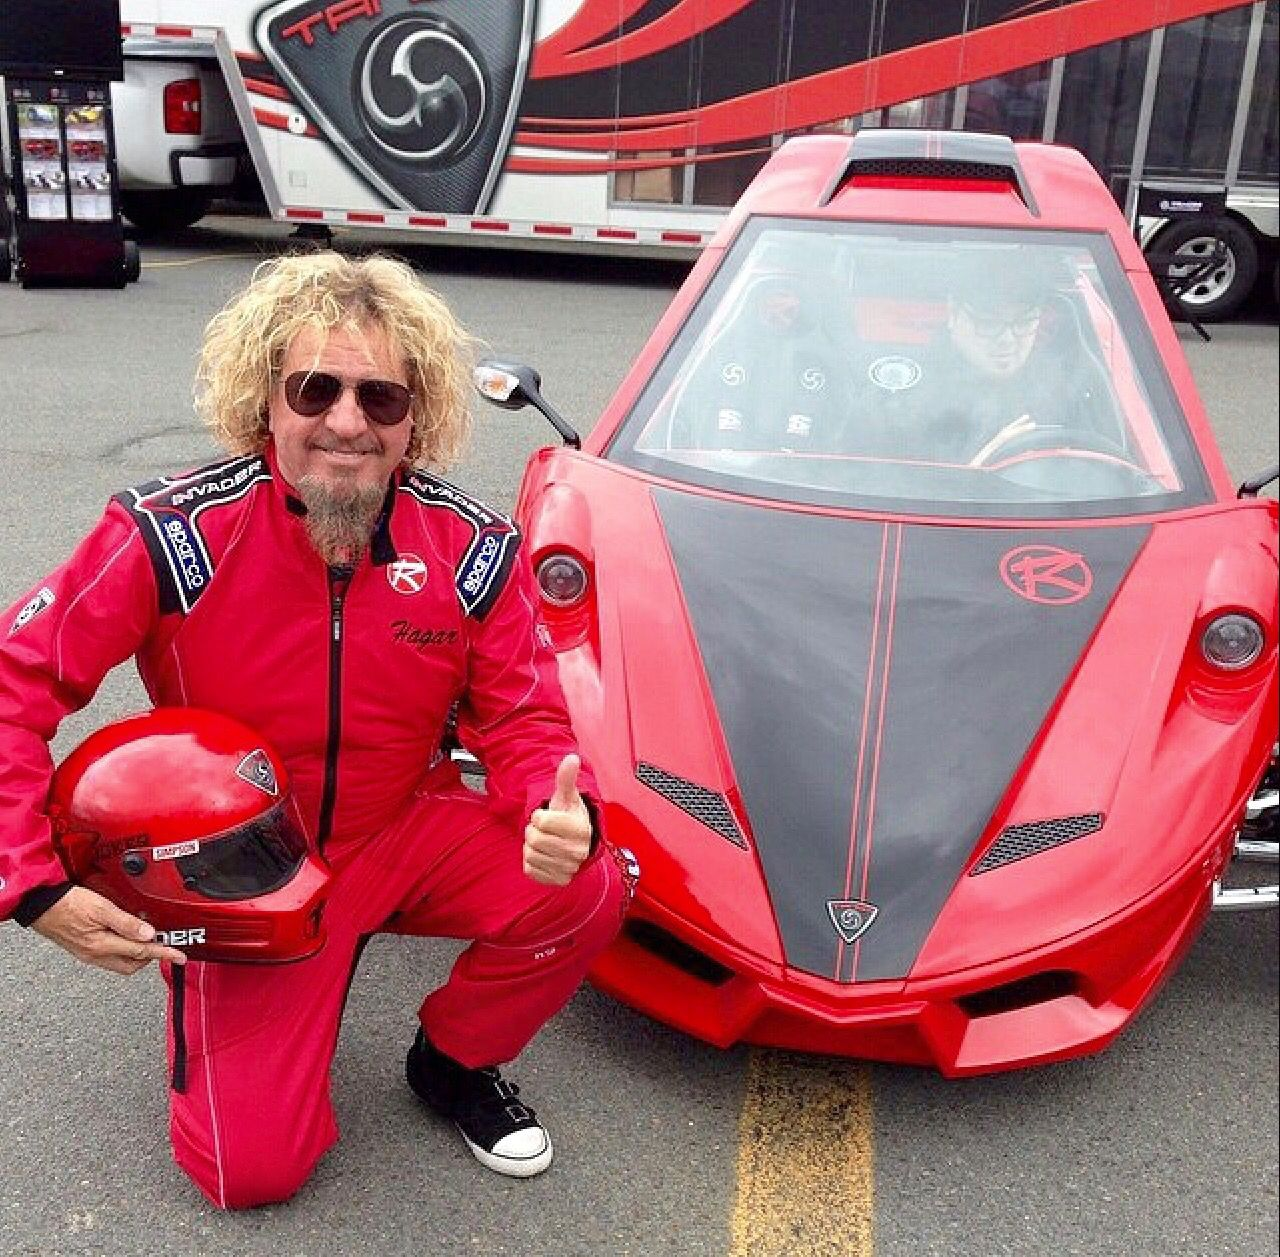 Sammy Hagar Red Leather Jacket Leather Jacket Red Leather